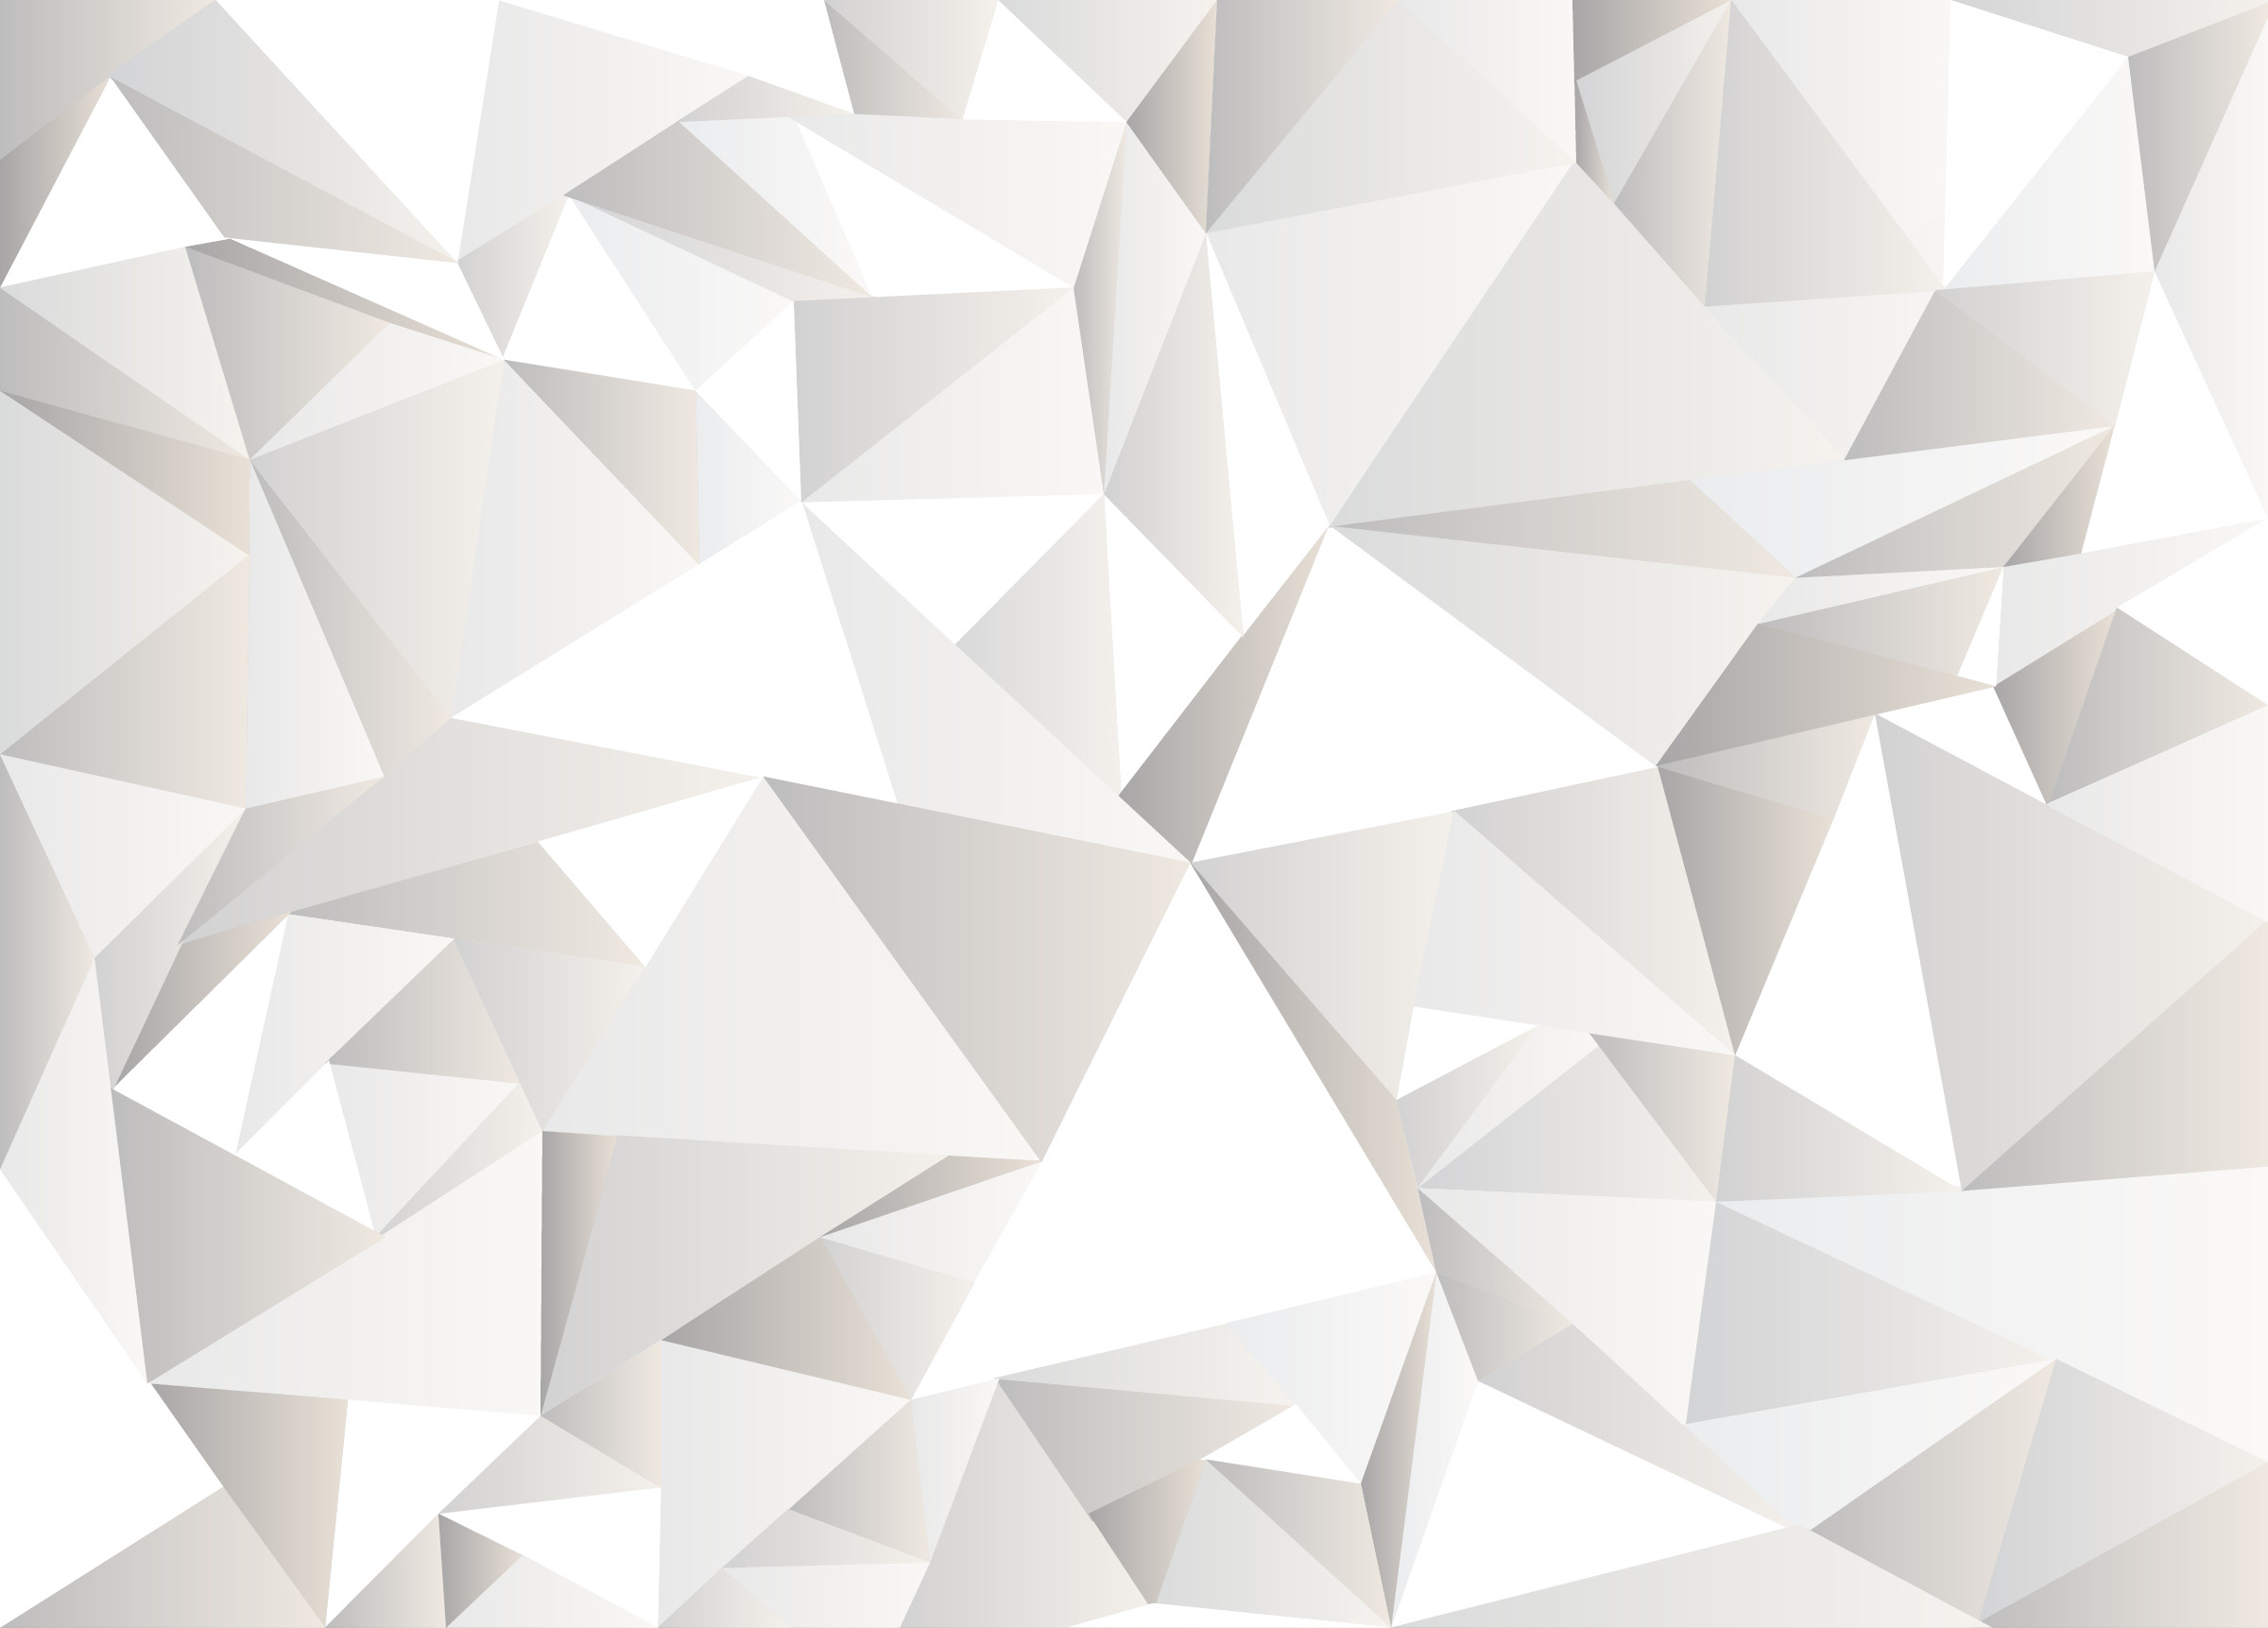 All White Abstract Backgrounds